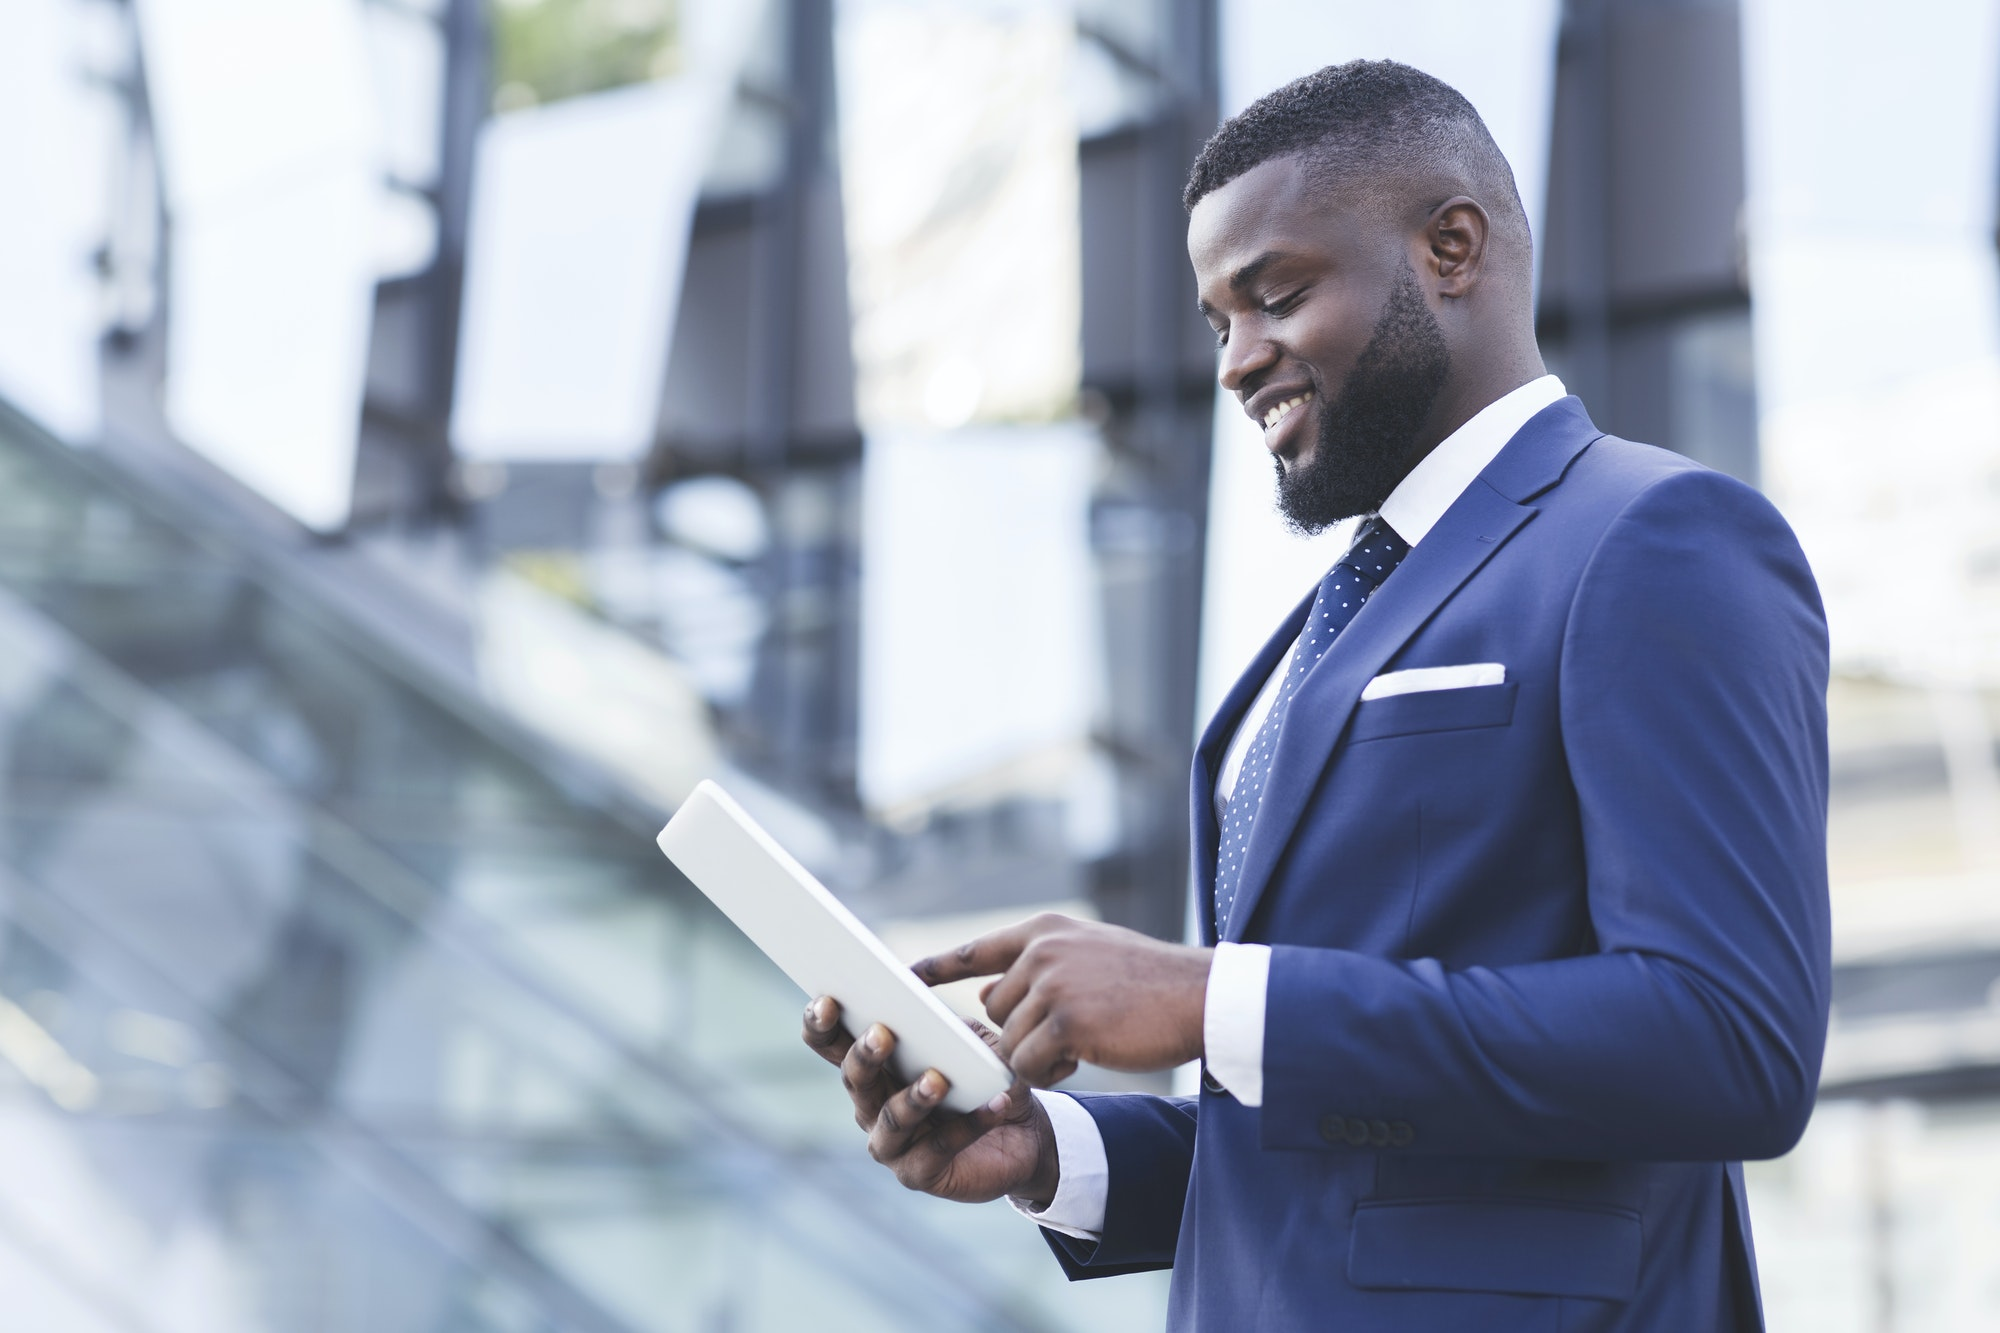 Pleased Black Businessman Using Digital Tablet Standing Outdoors, Copy Space